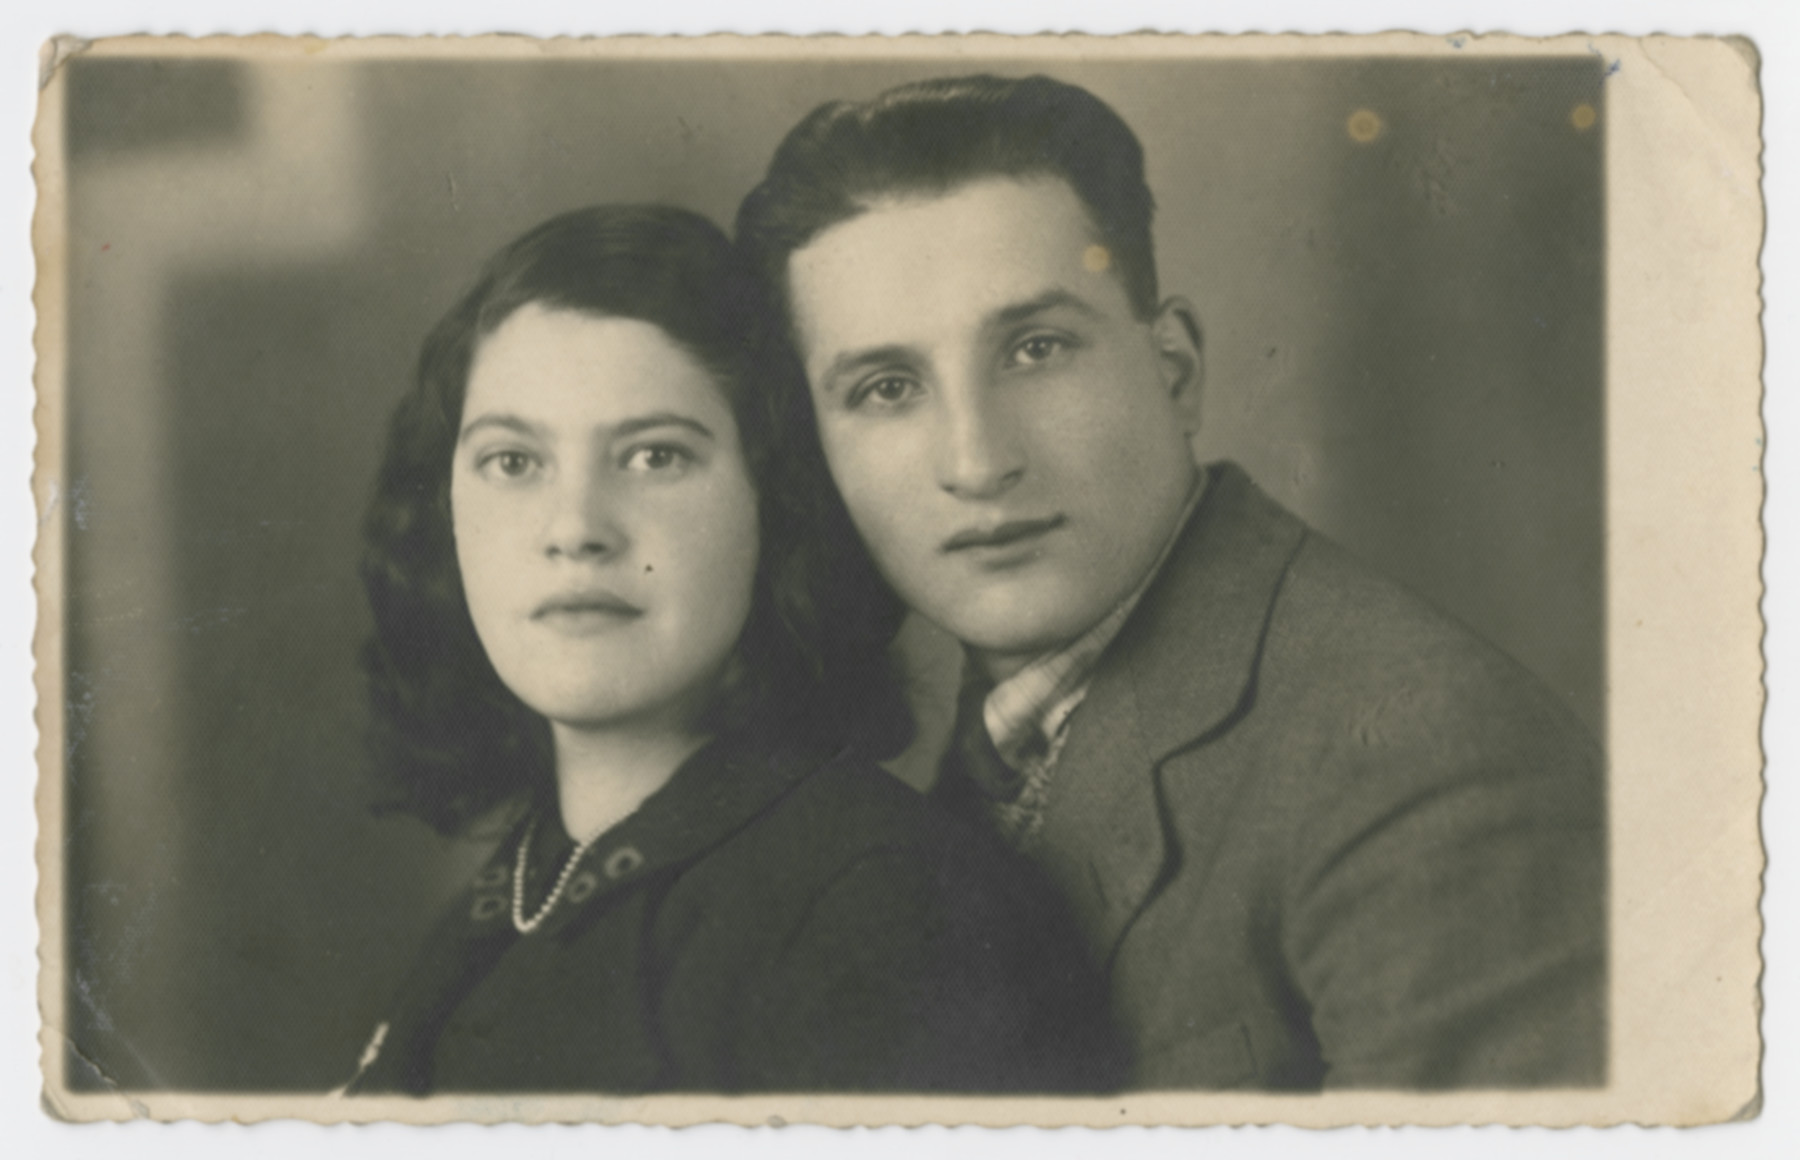 "Close-up portrait of Hela and Chaim (last names uknown) in the Sosnowiec ghetto.  The original caption reads: ""I offer my image to you, the young, nice couple Hanka and David, as an eternal souvenir.  Hela and Chaim."""